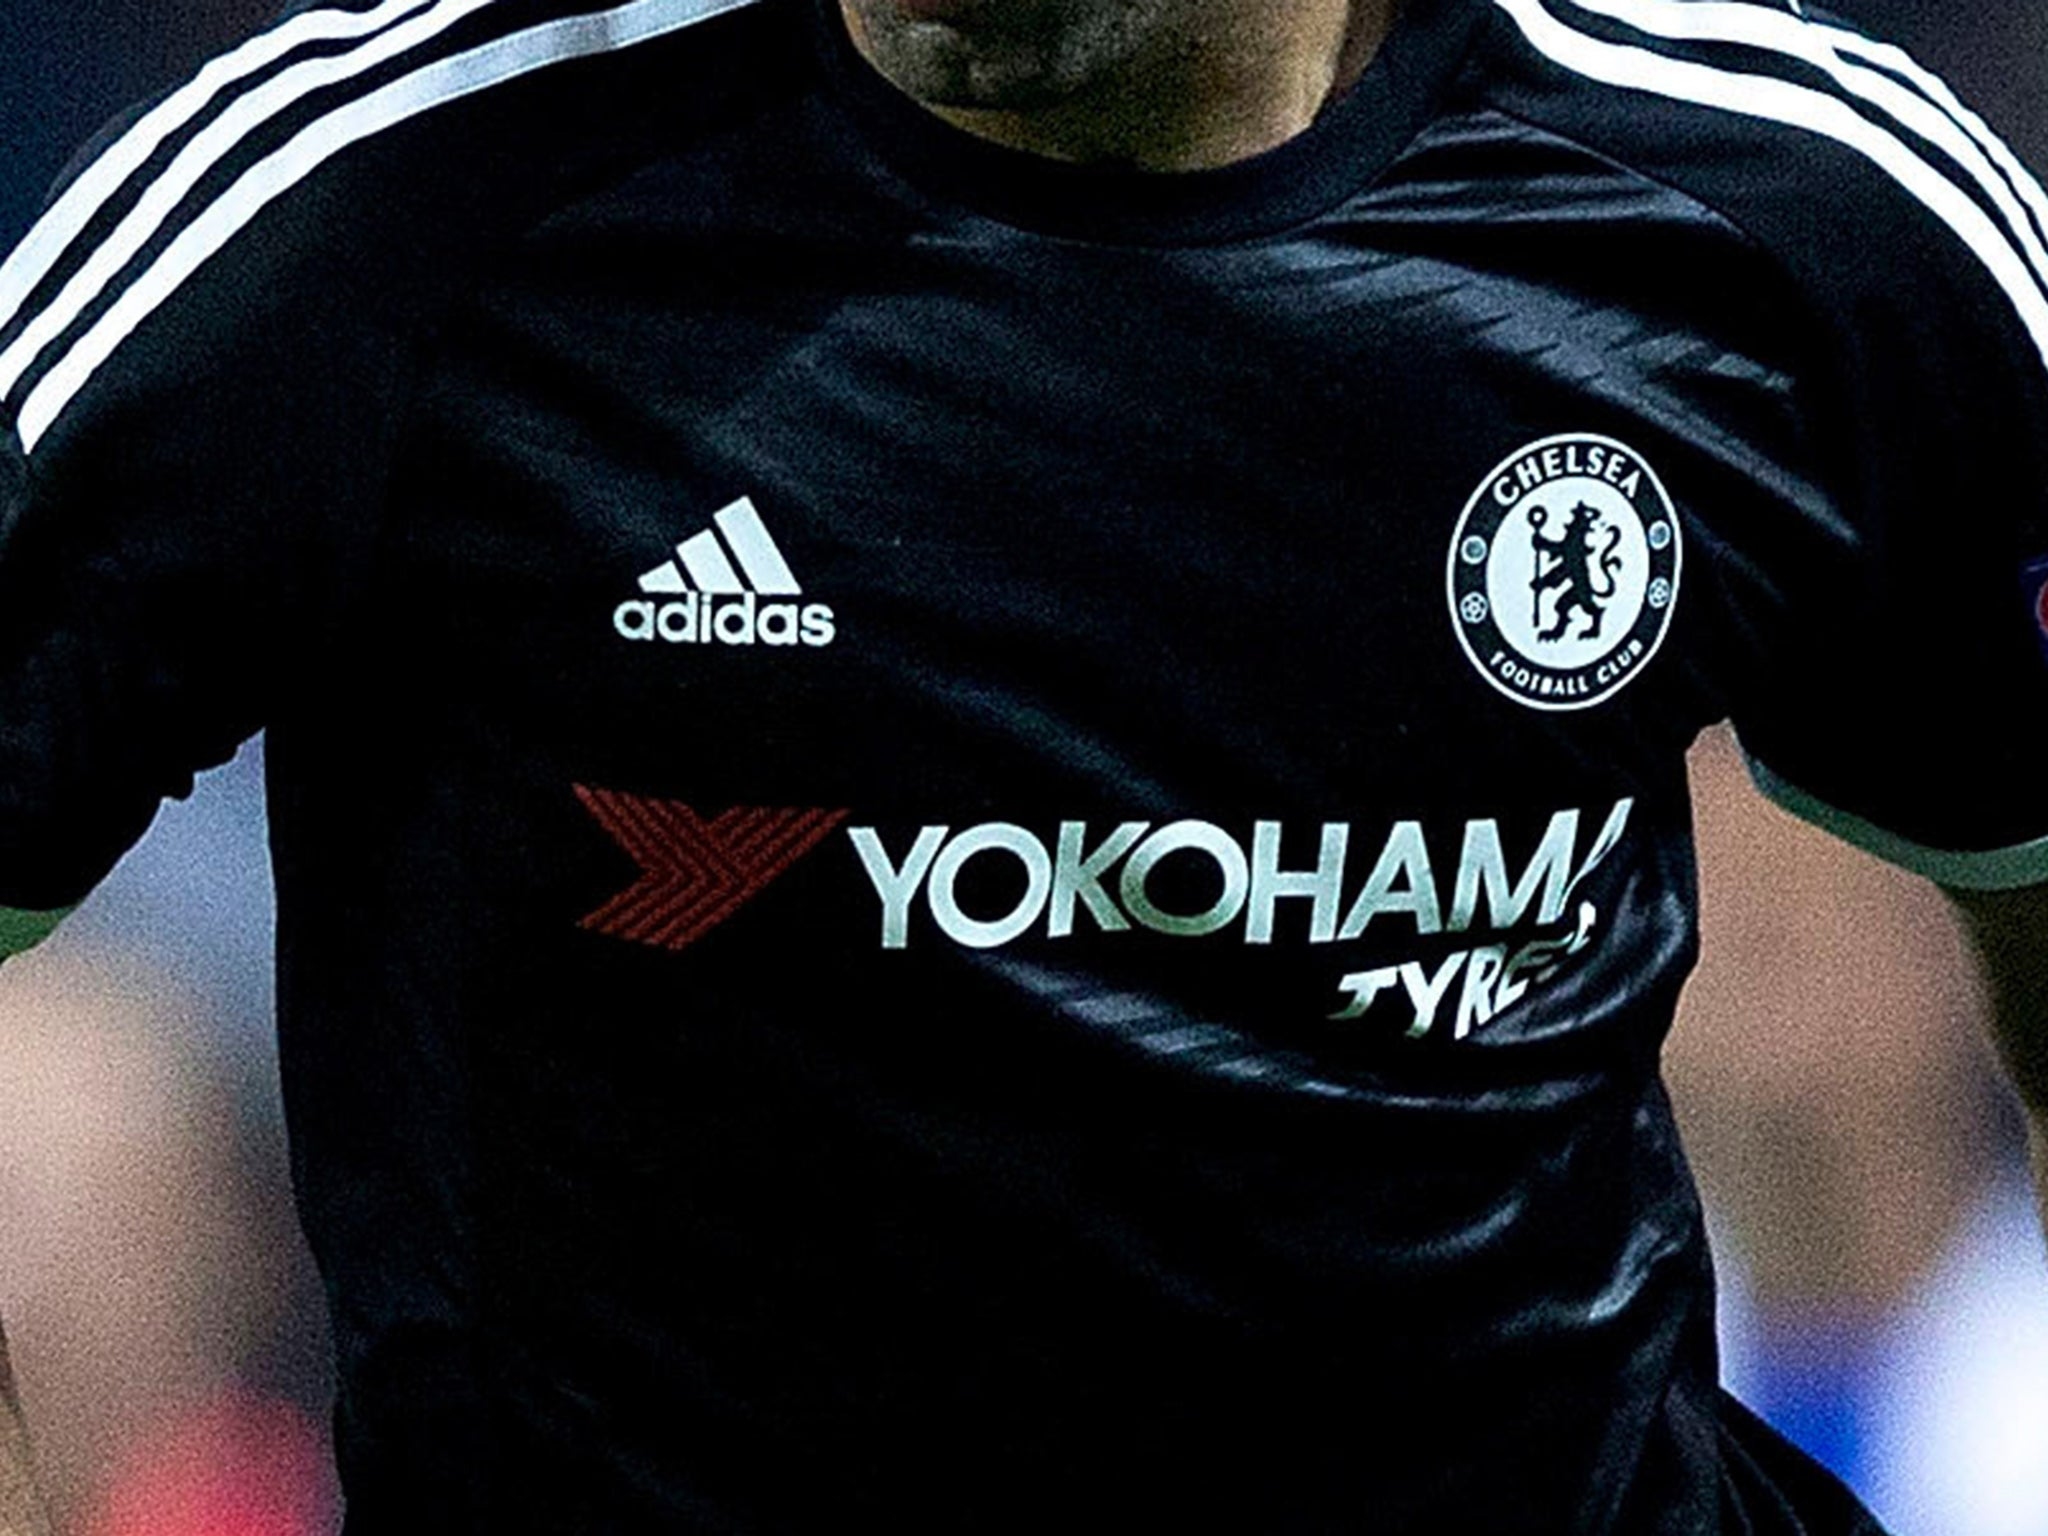 Chelsea third shirt 201516 launched: Chelsea reveal black